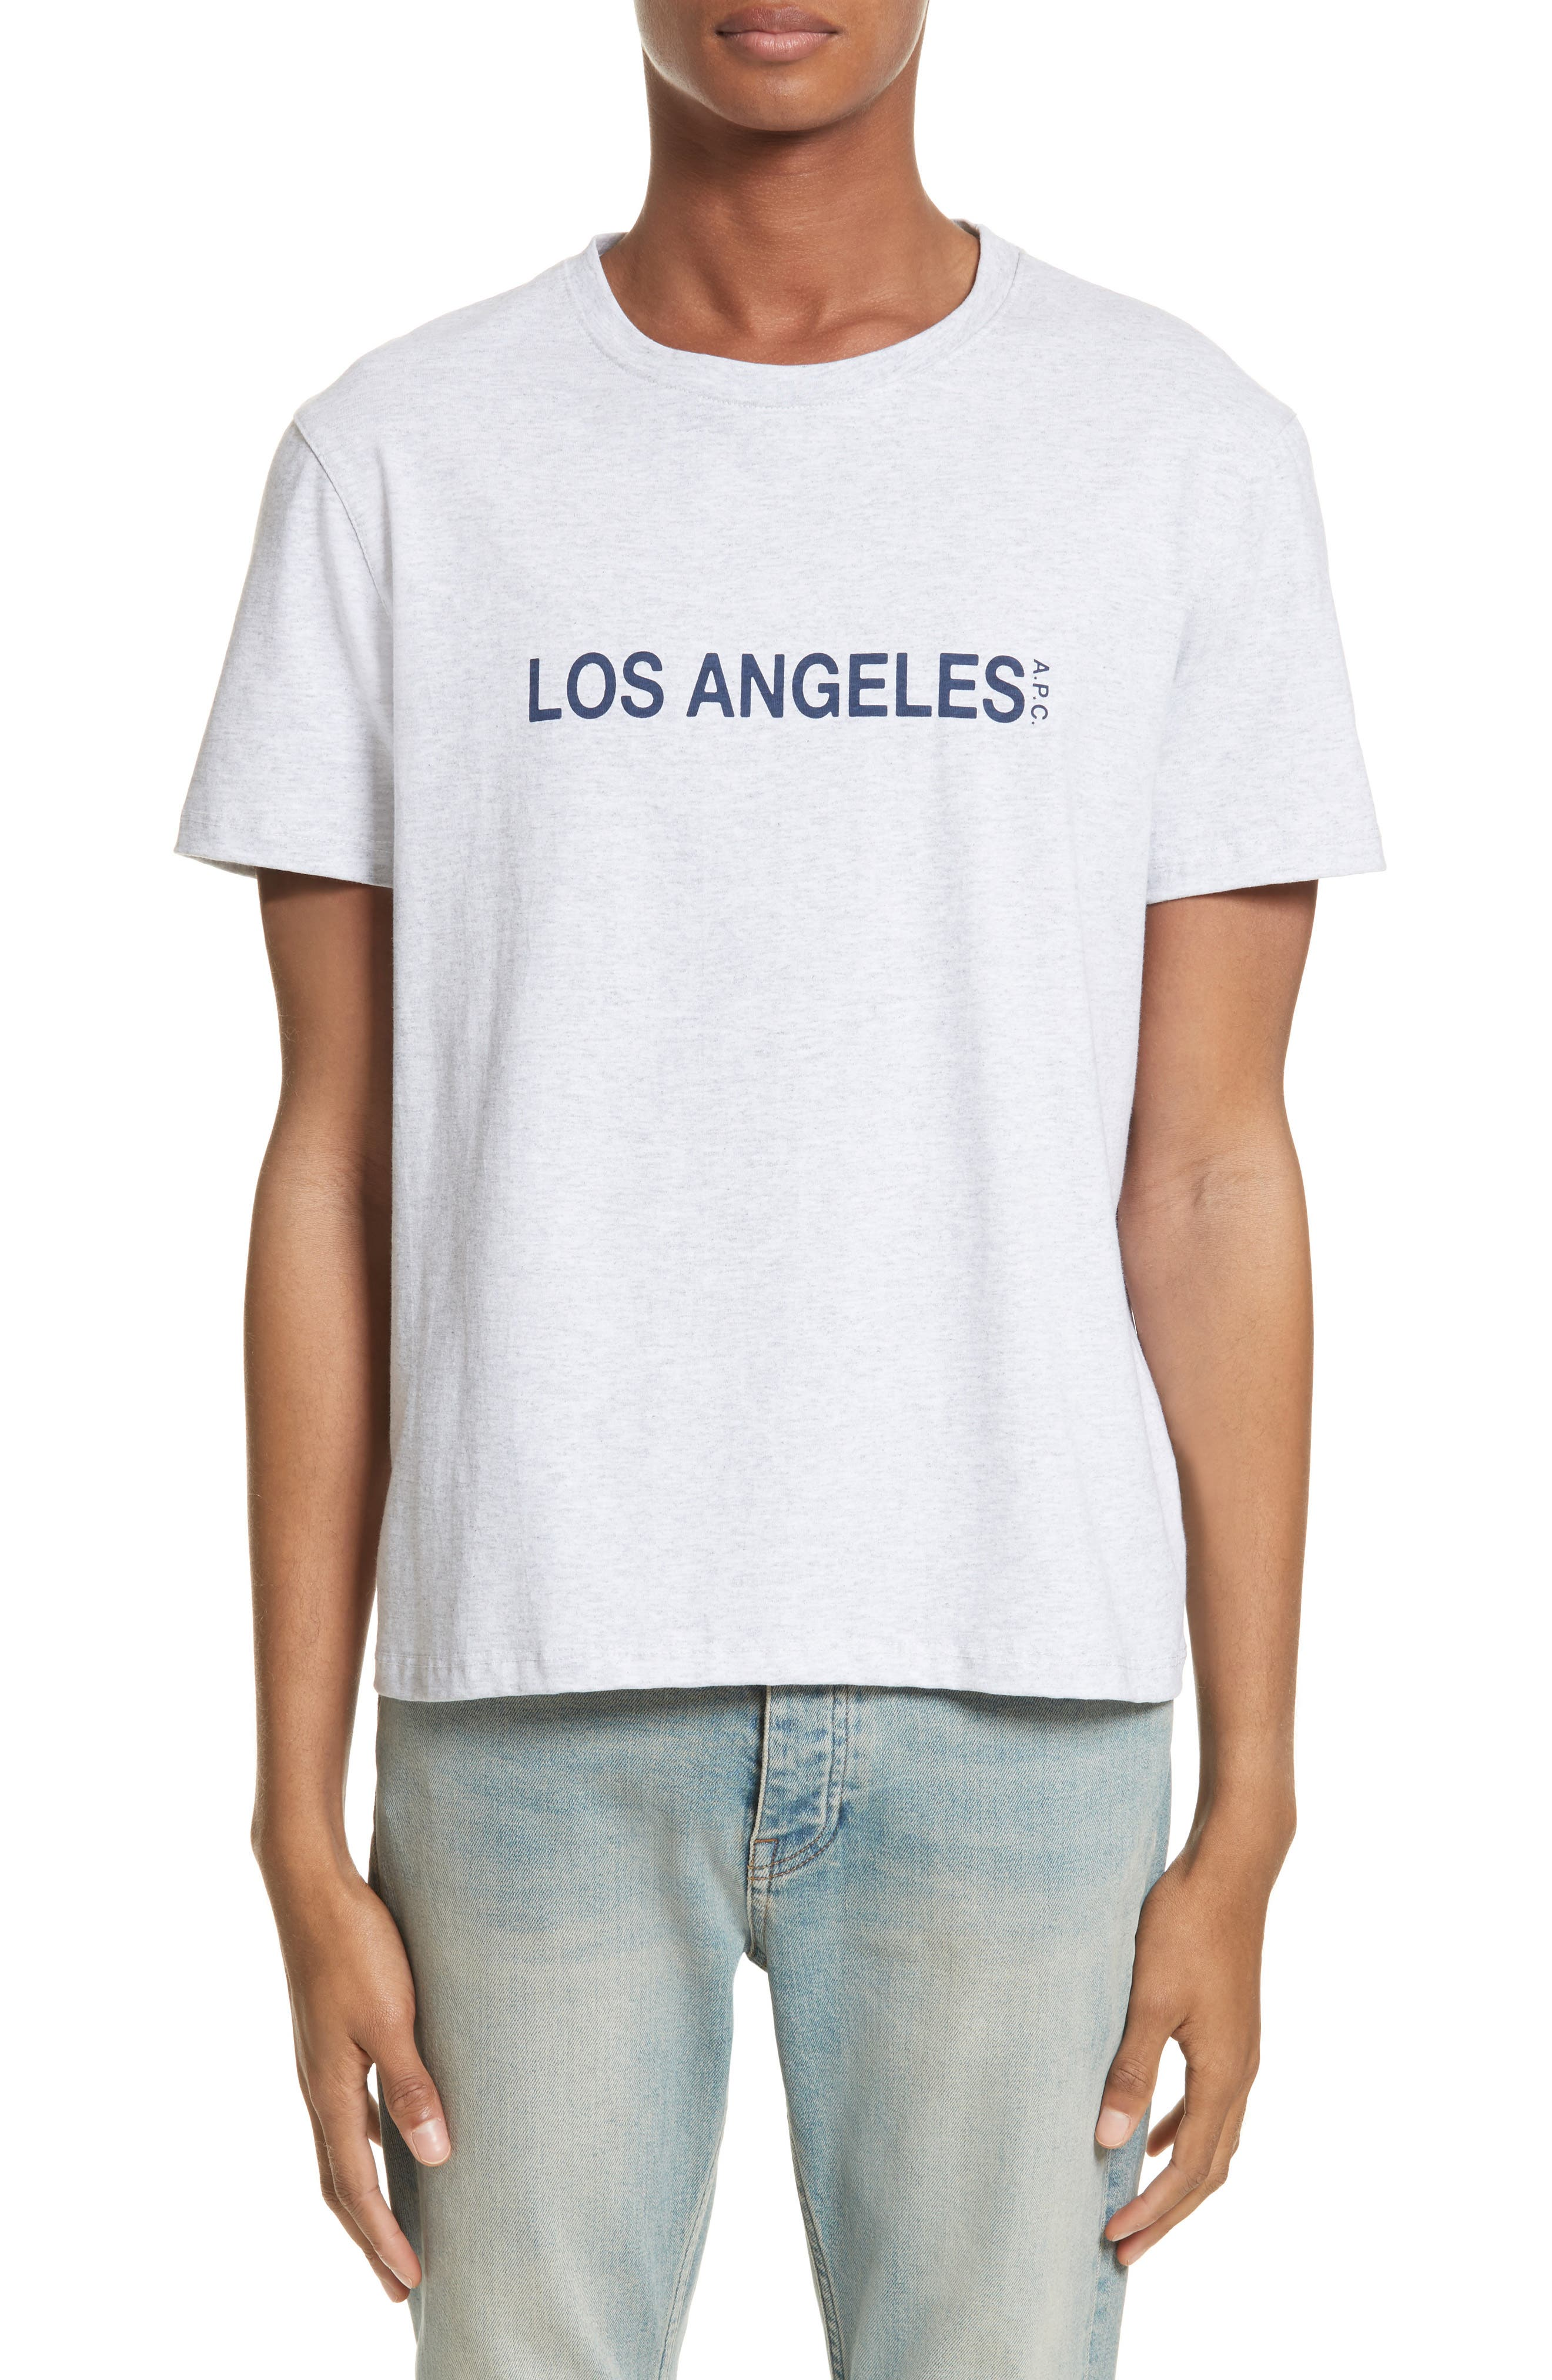 Los Angeles Graphic T-Shirt,                         Main,                         color, Gris Chine Pla